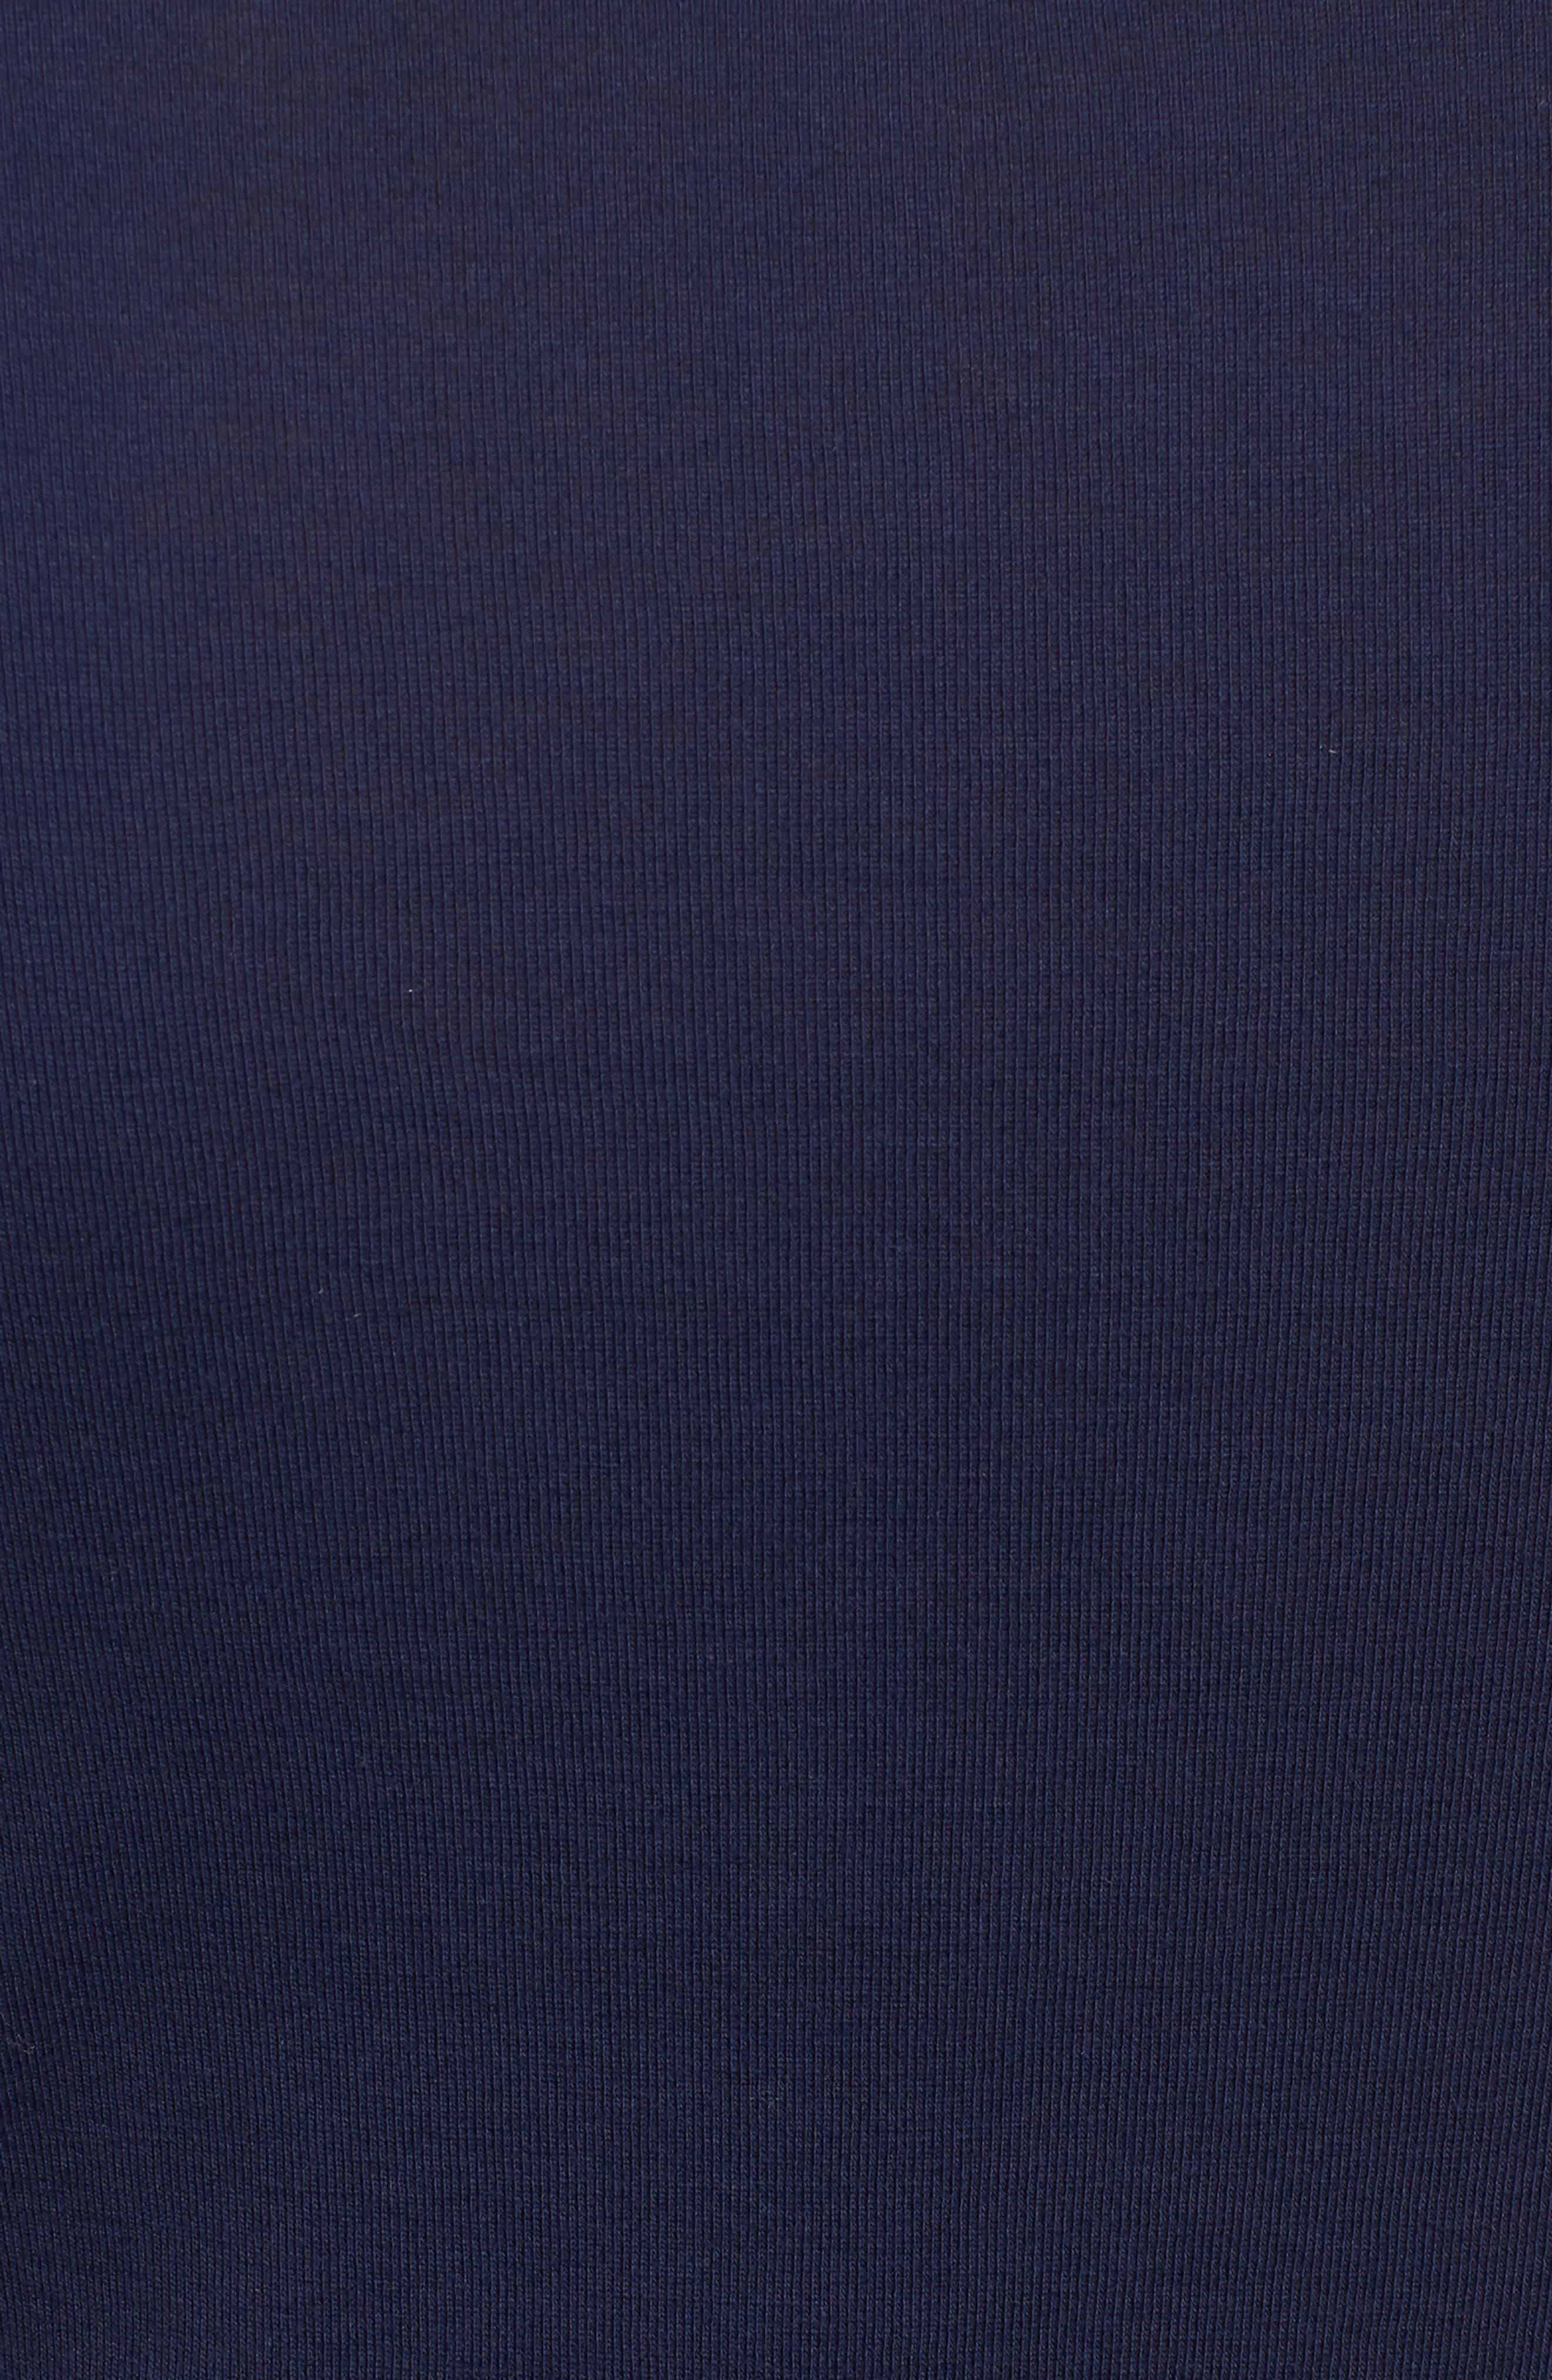 Long Sleeve Scoop Neck Cotton Tee,                             Alternate thumbnail 6, color,                             NAVY PEACOAT